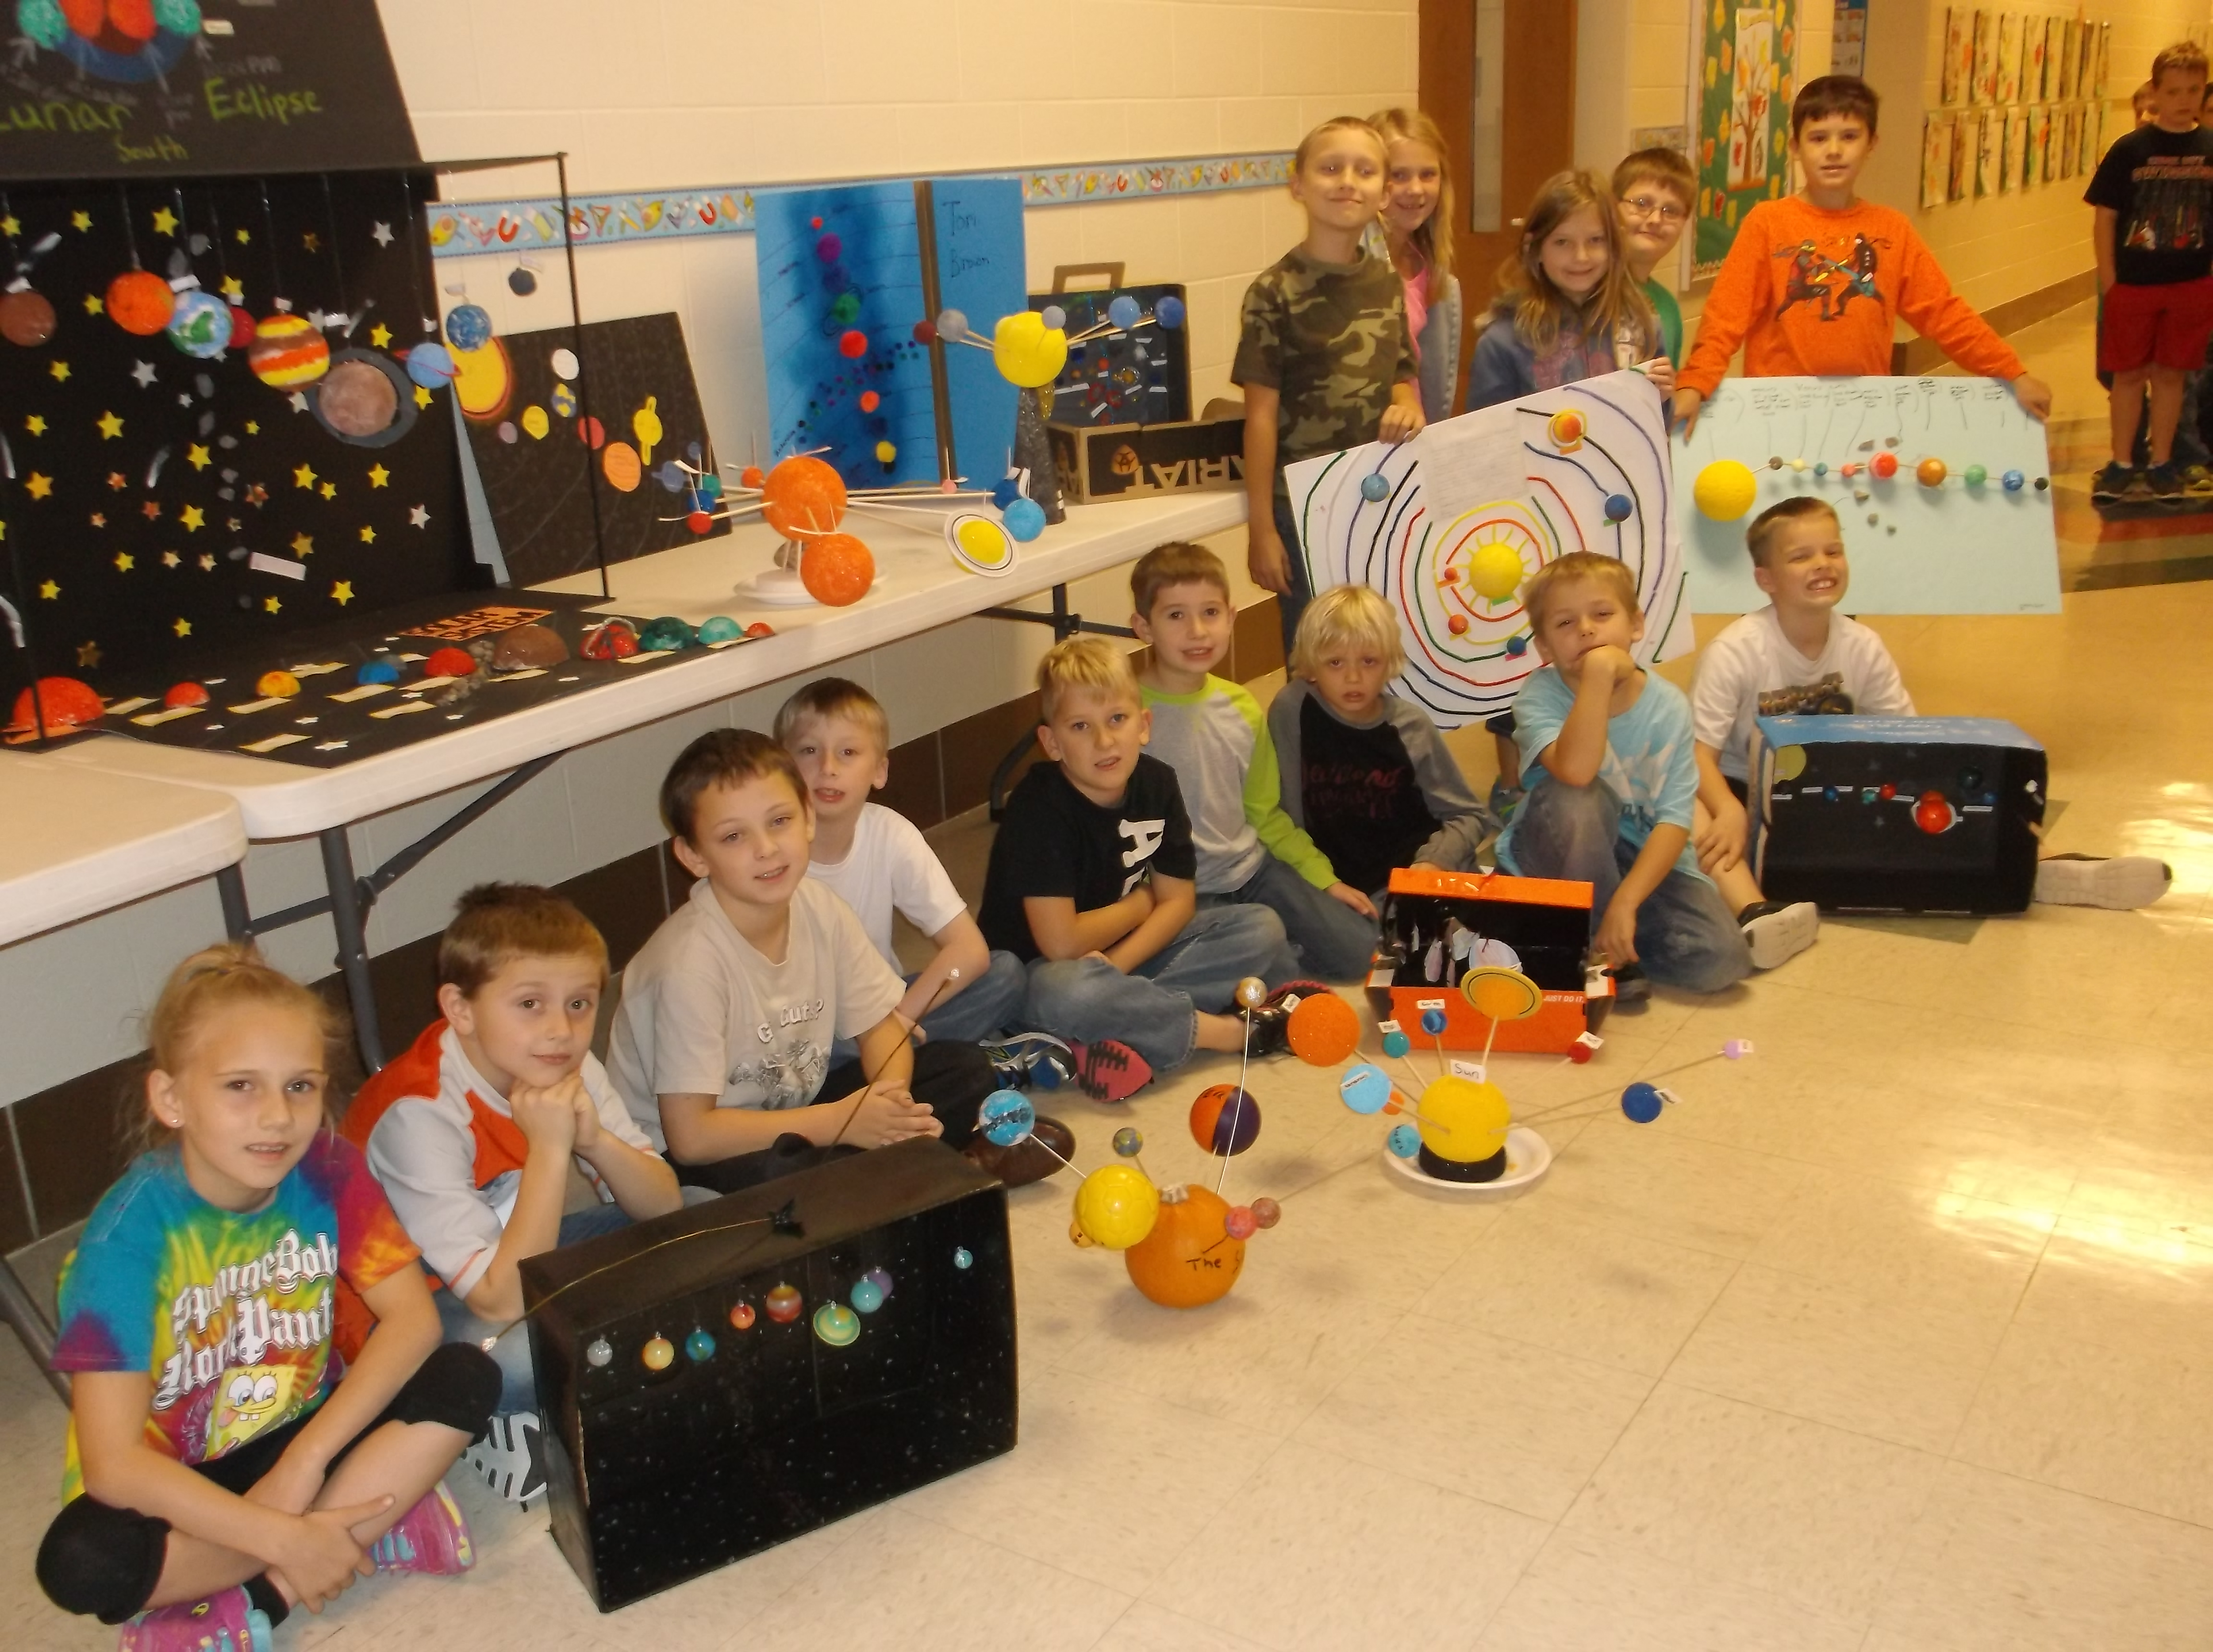 Solar System Project For Elementary School - solar system ...